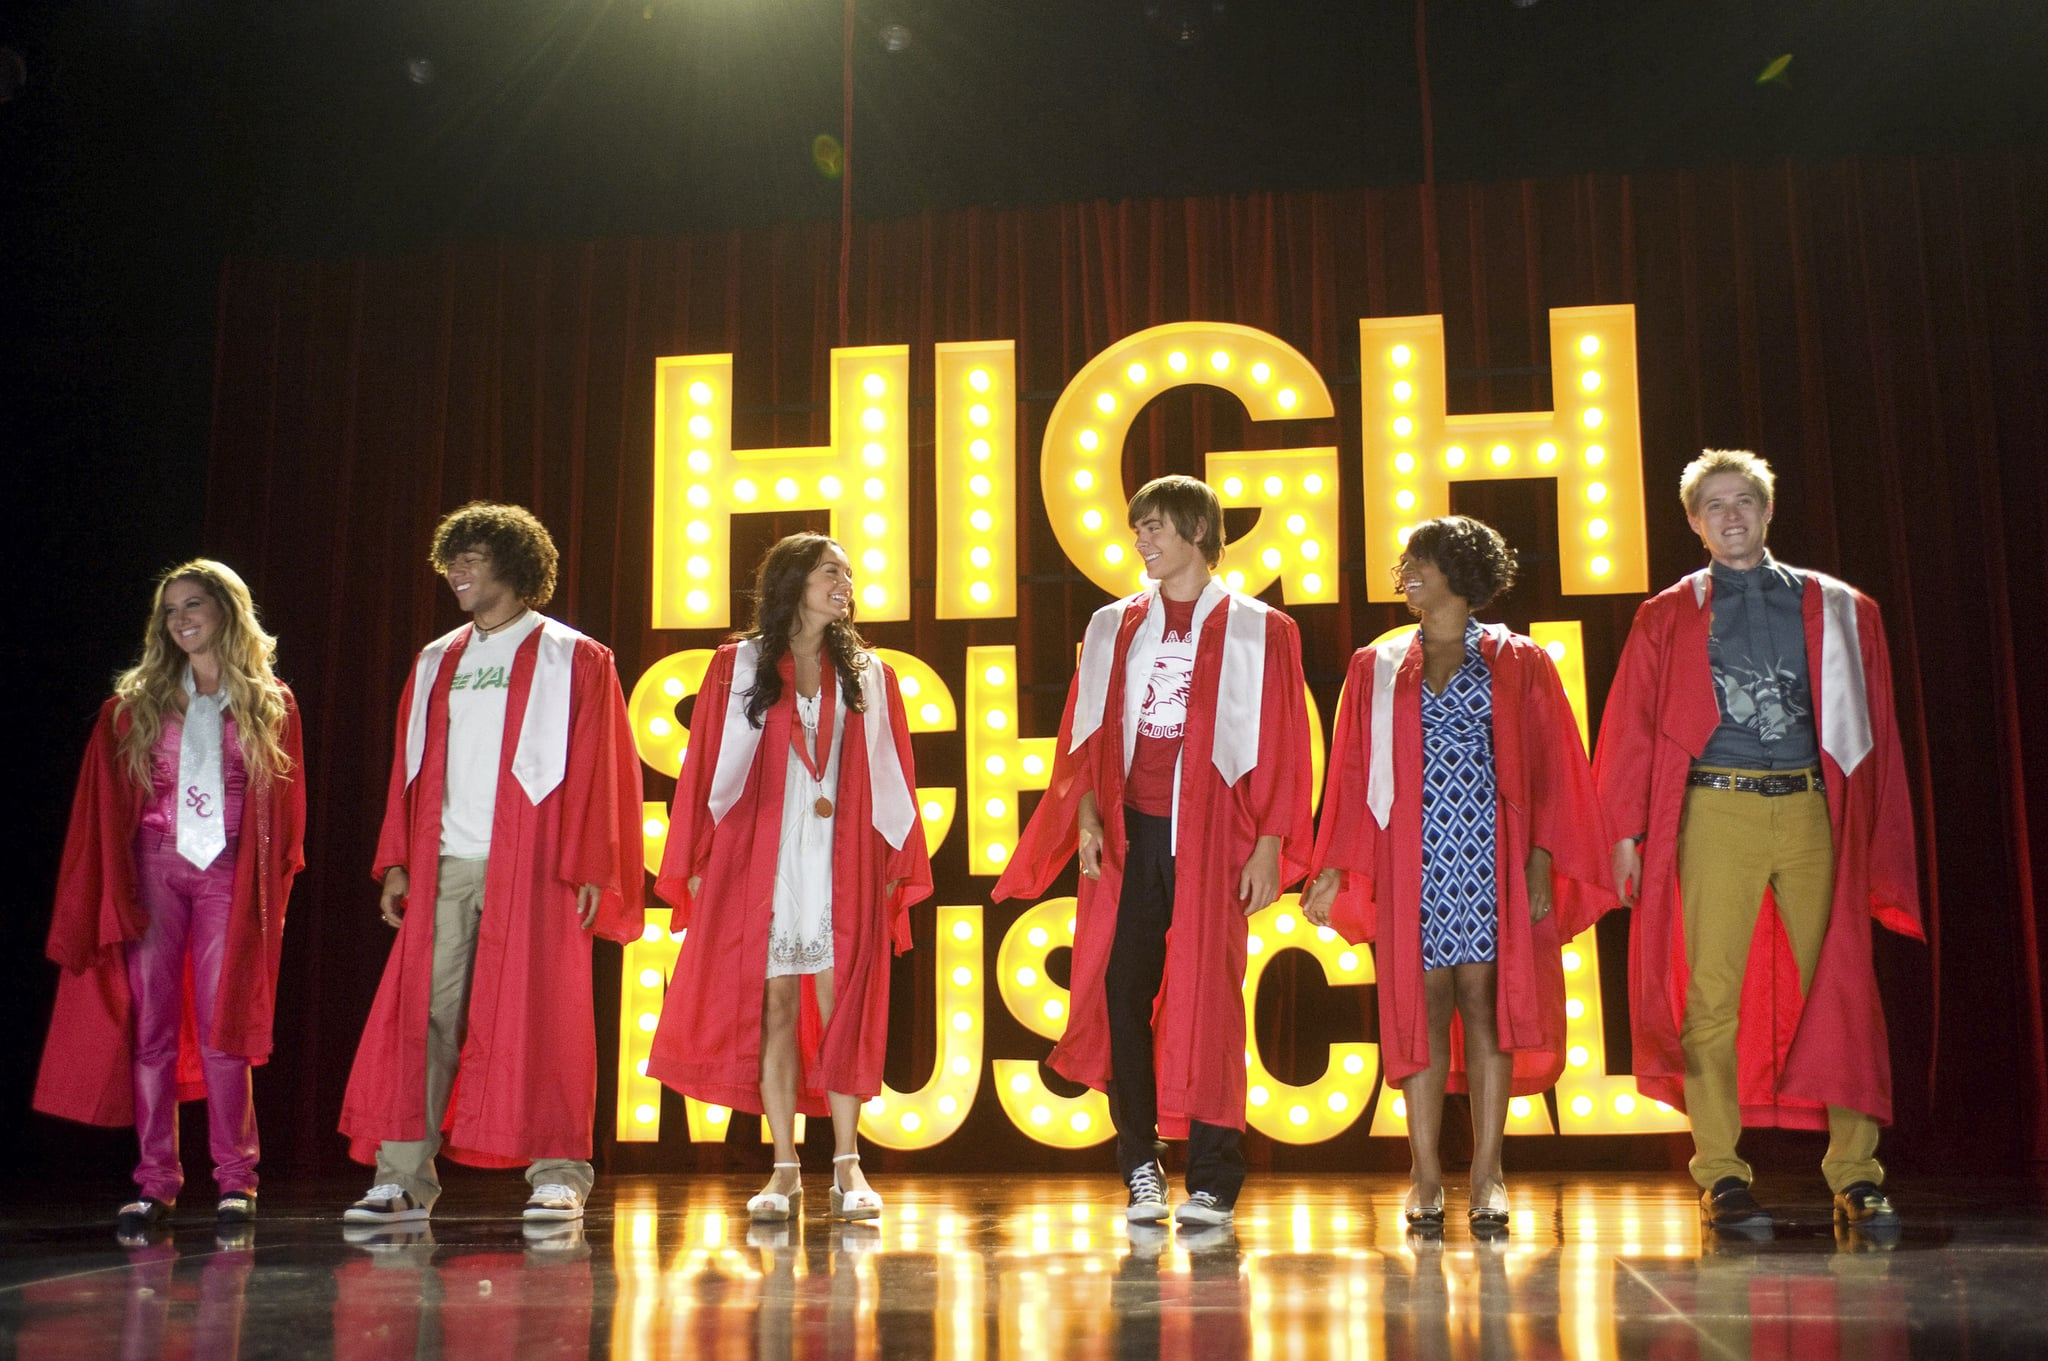 HIGH SCHOOL MUSICAL 3: SENIOR YEAR, from left: Ashley Tisdale, Corbin Bleu, Vanessa Hudgens, Zac Efron, Monique Coleman, Lucas Grabeel, 2008. Walt Disney Co./courtesy Everett Collection